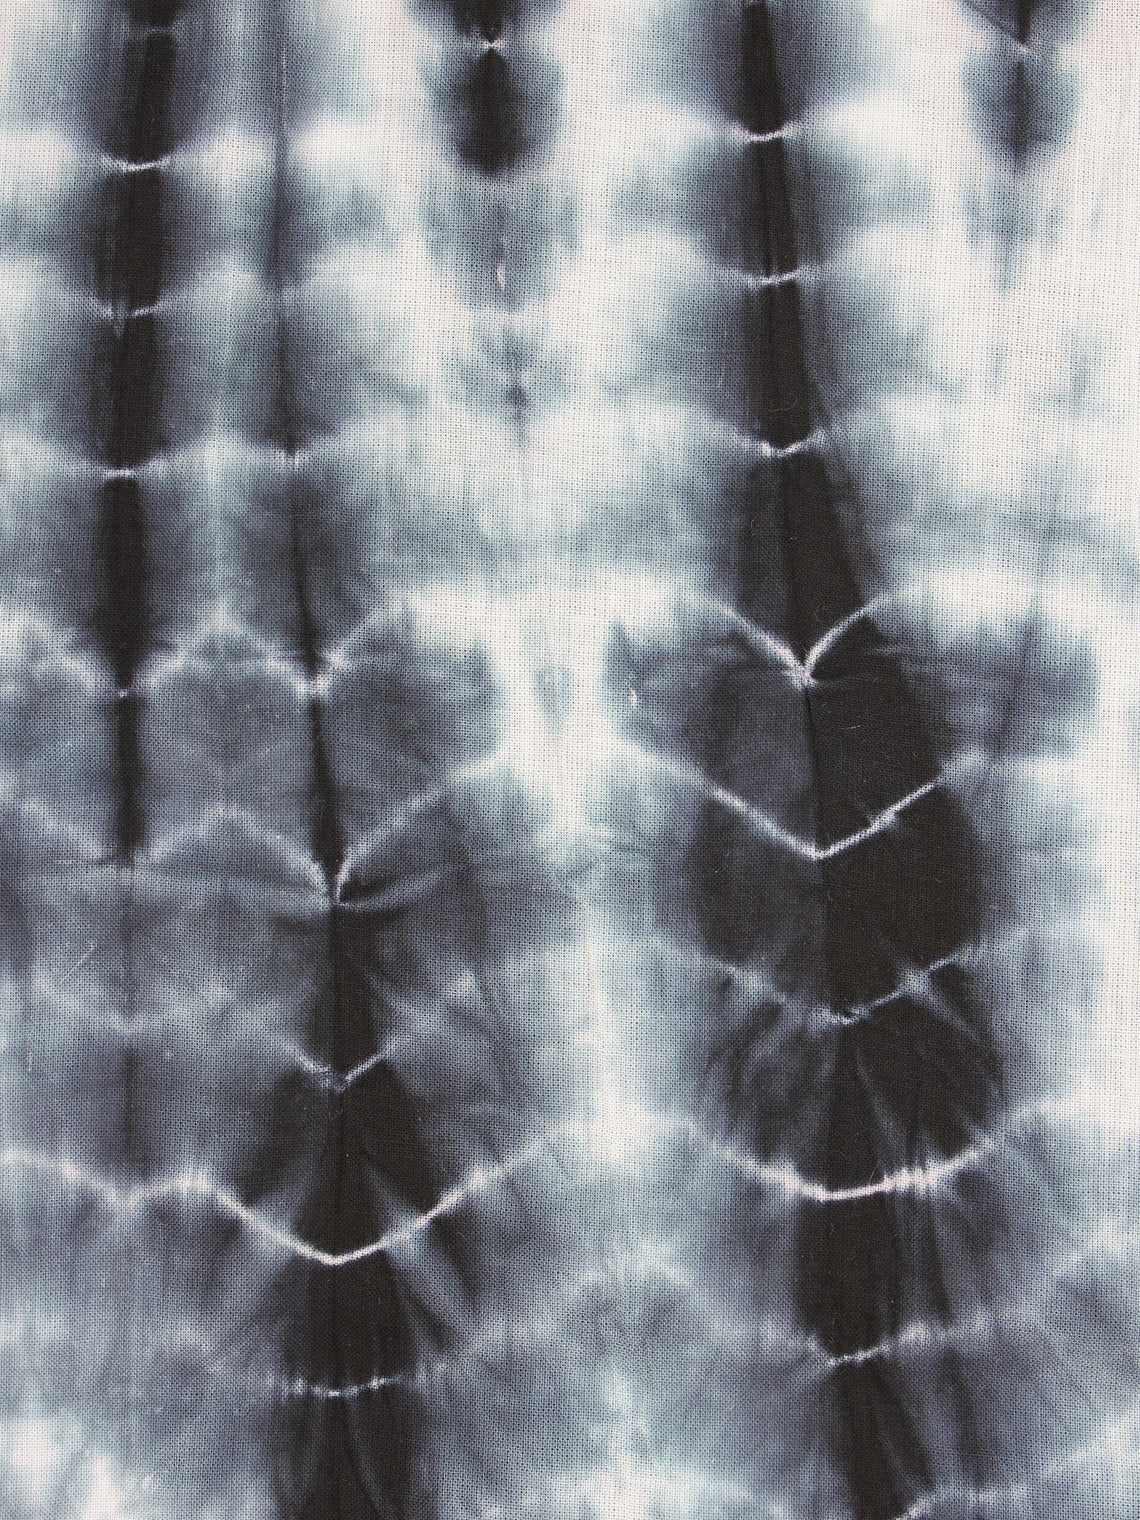 Black White Shibori Dyed Cotton Fabric Per Meter - F0916186